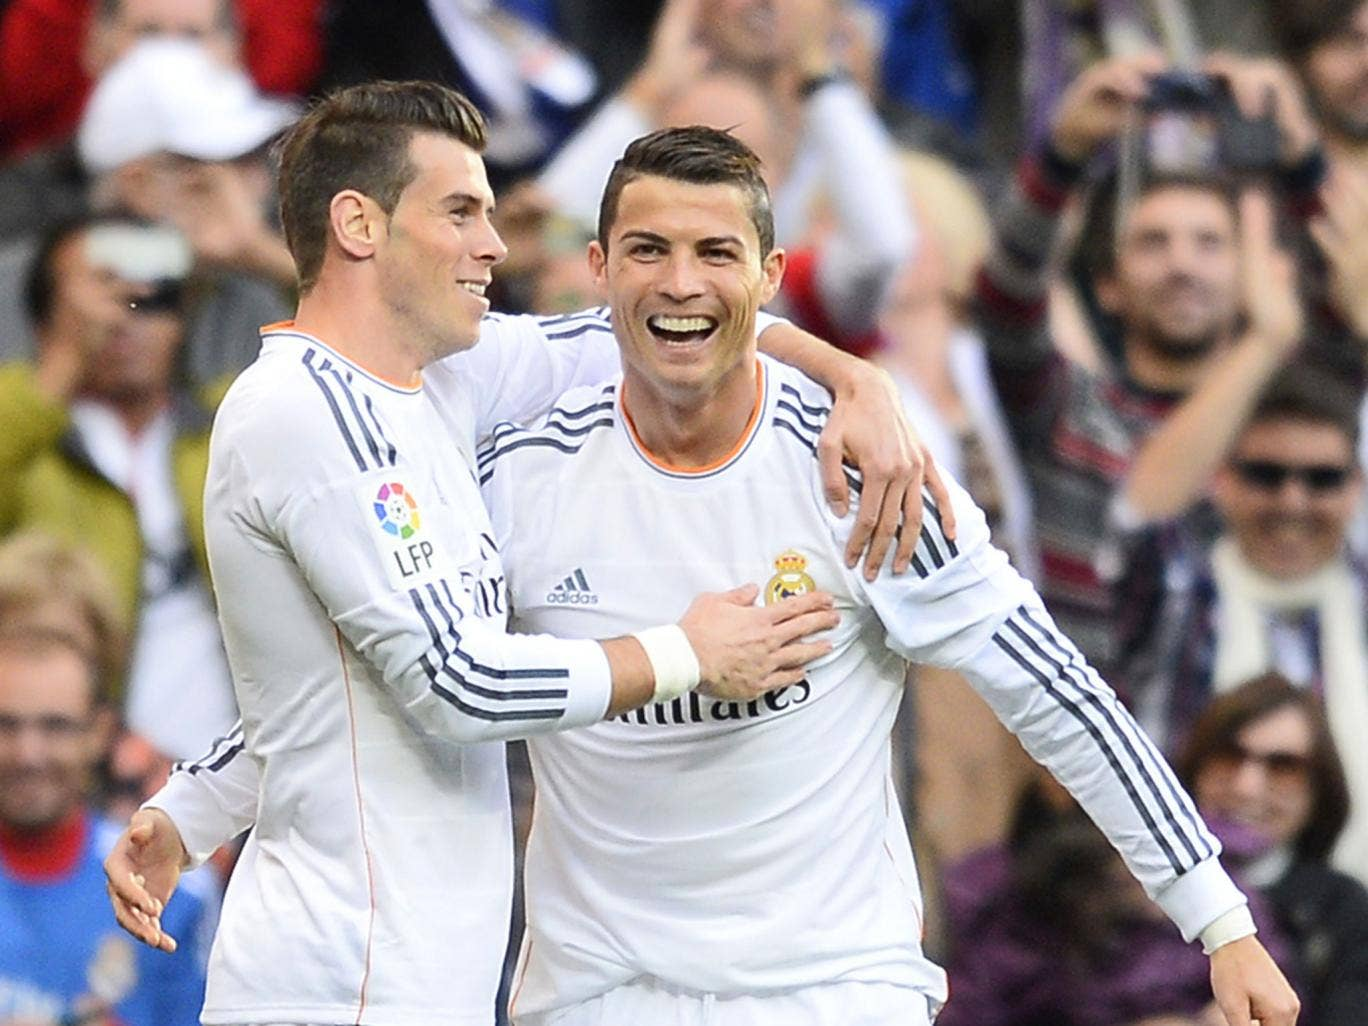 Cristiano Ronaldo (right) celebrates his first goal in the 5-1 win over Real Sociedad with Gareth Bale on Saturday